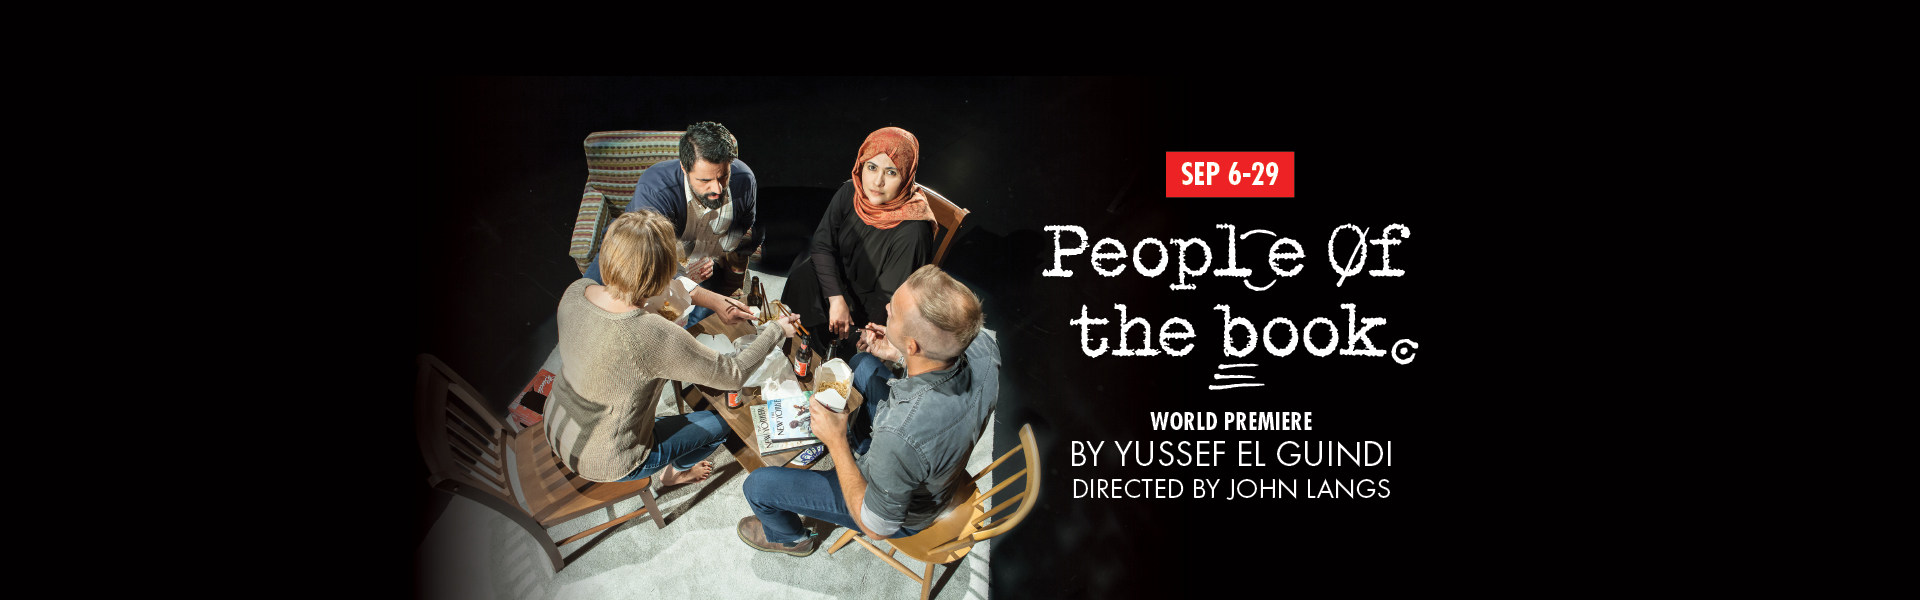 2019 People of the Book Banner Image